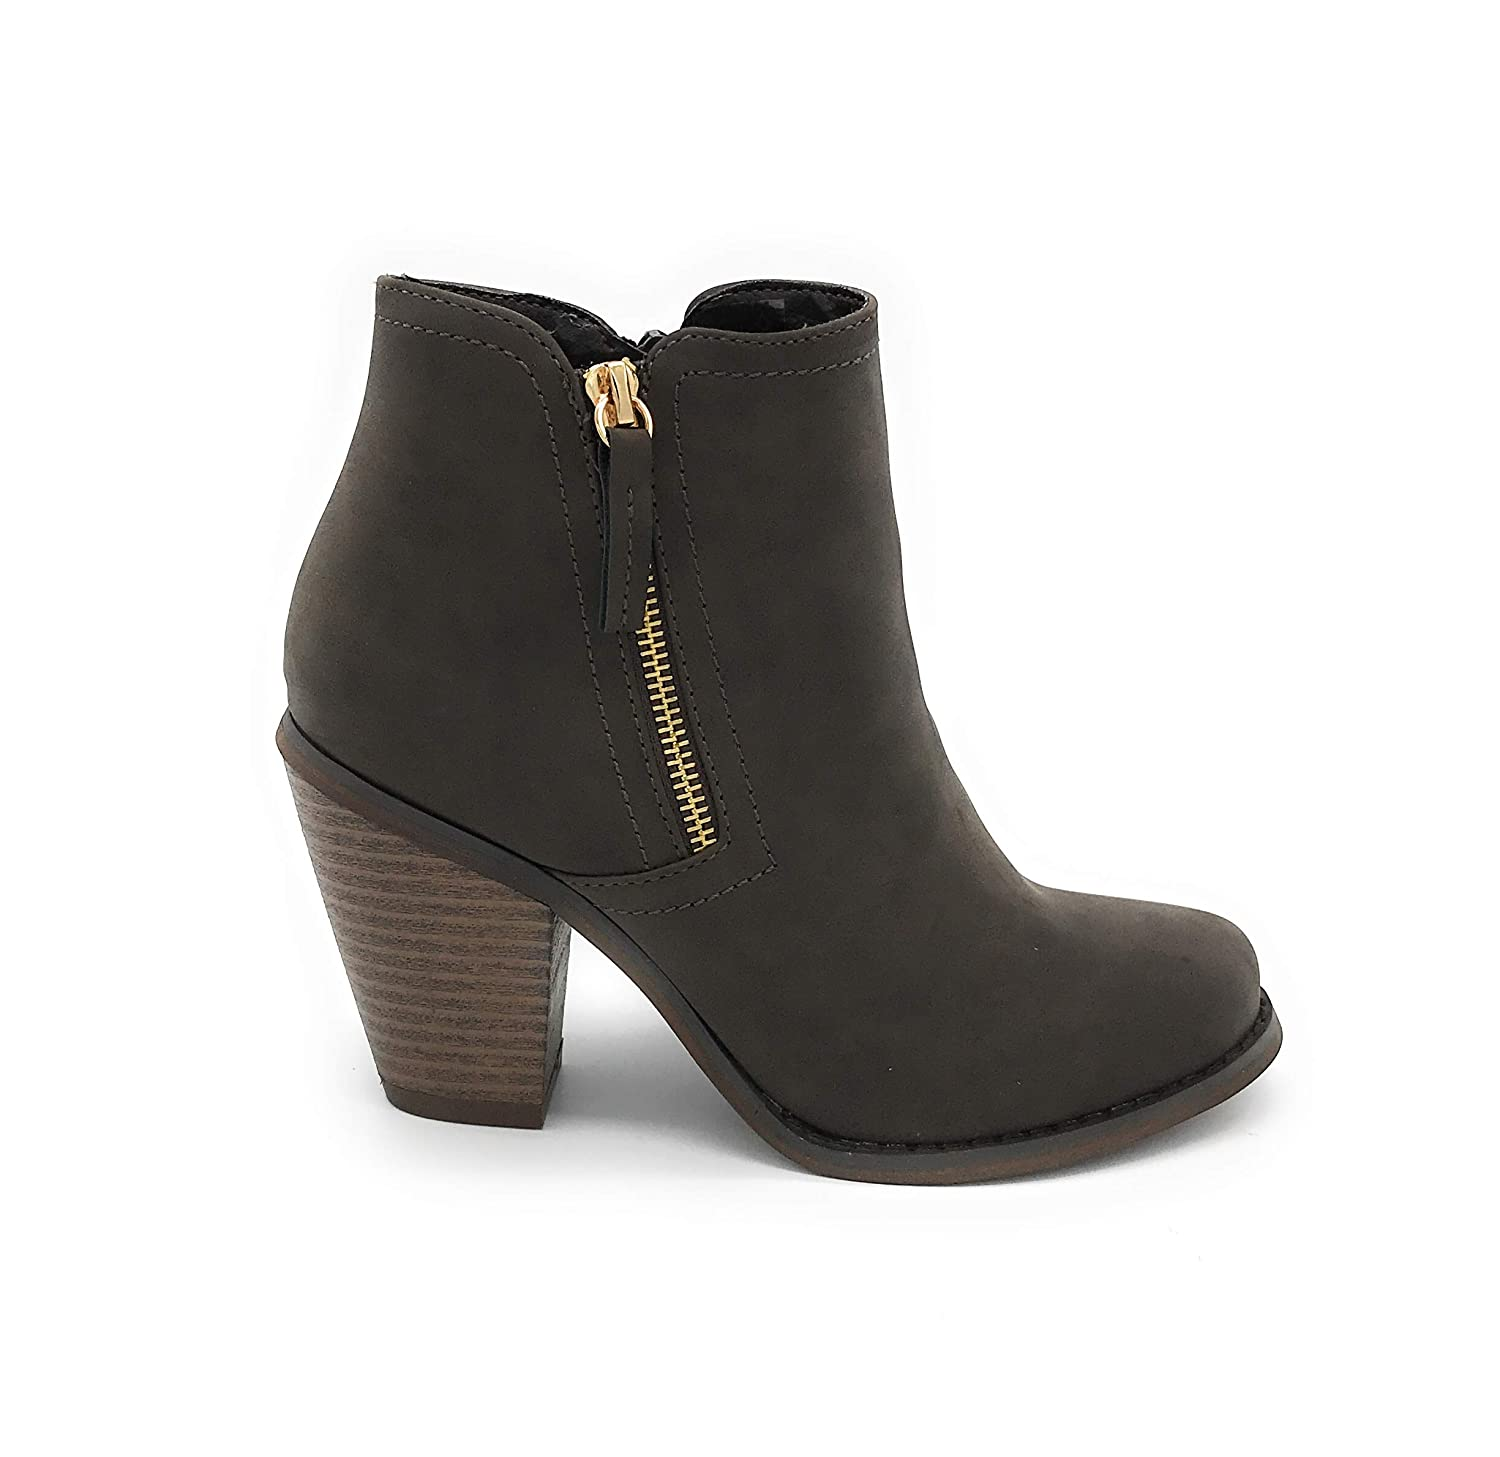 08brown bluee Berry EASY21 Women Fashion Ankle Boots Casual Short Bootie shoes